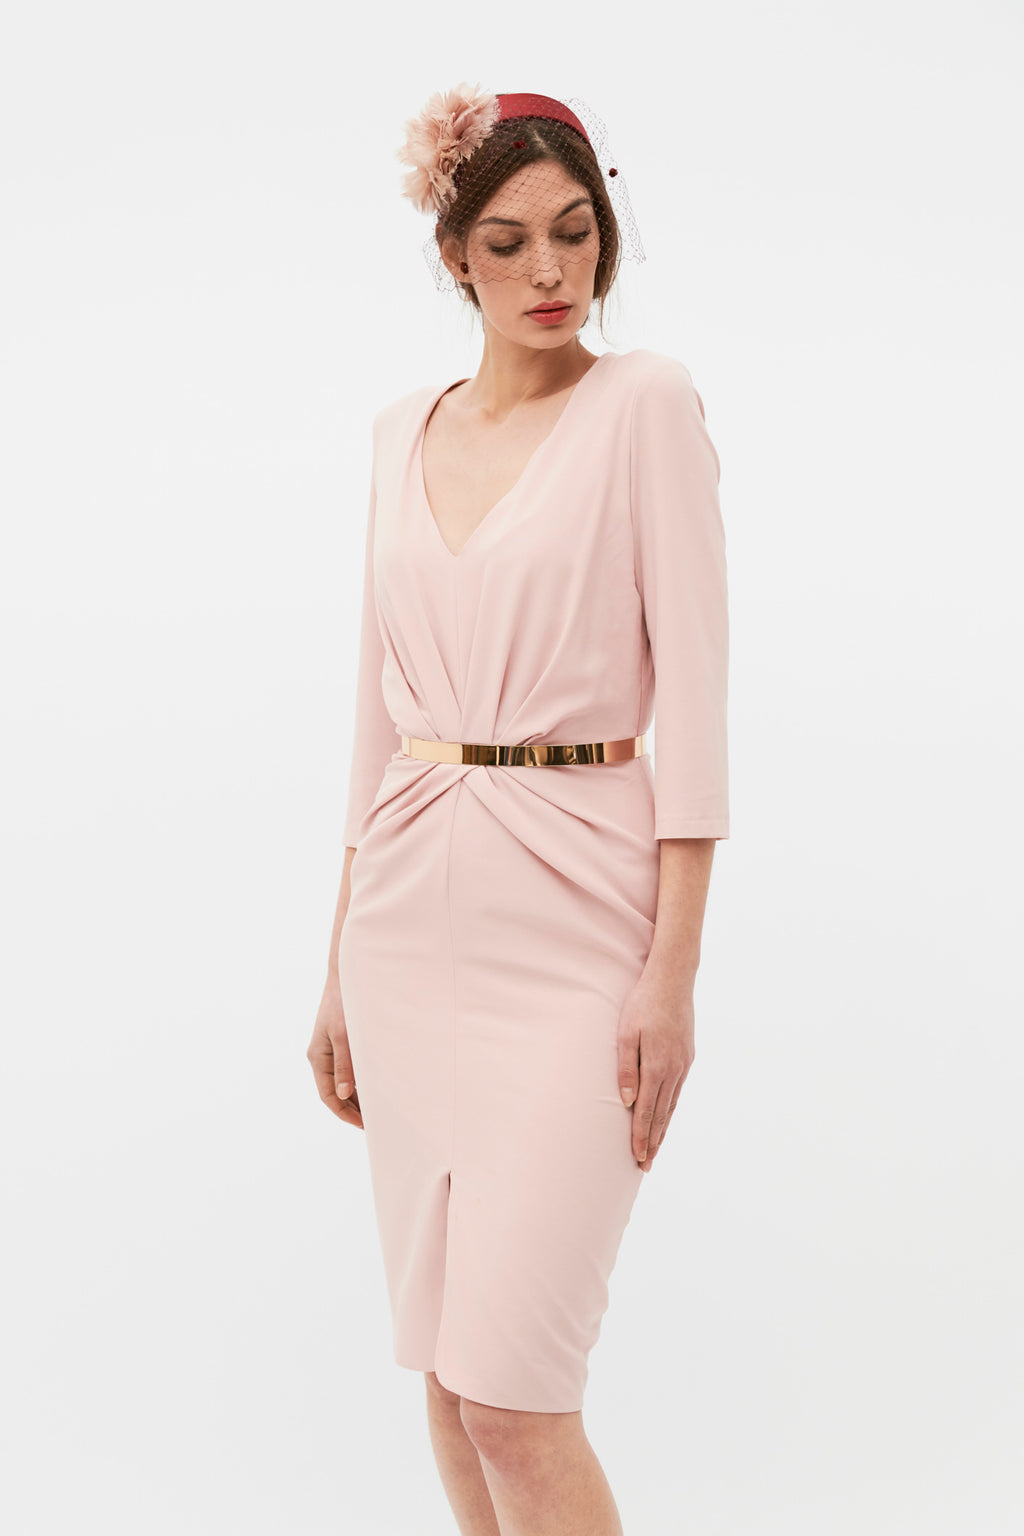 Petit Blume Dress - Nude Pink